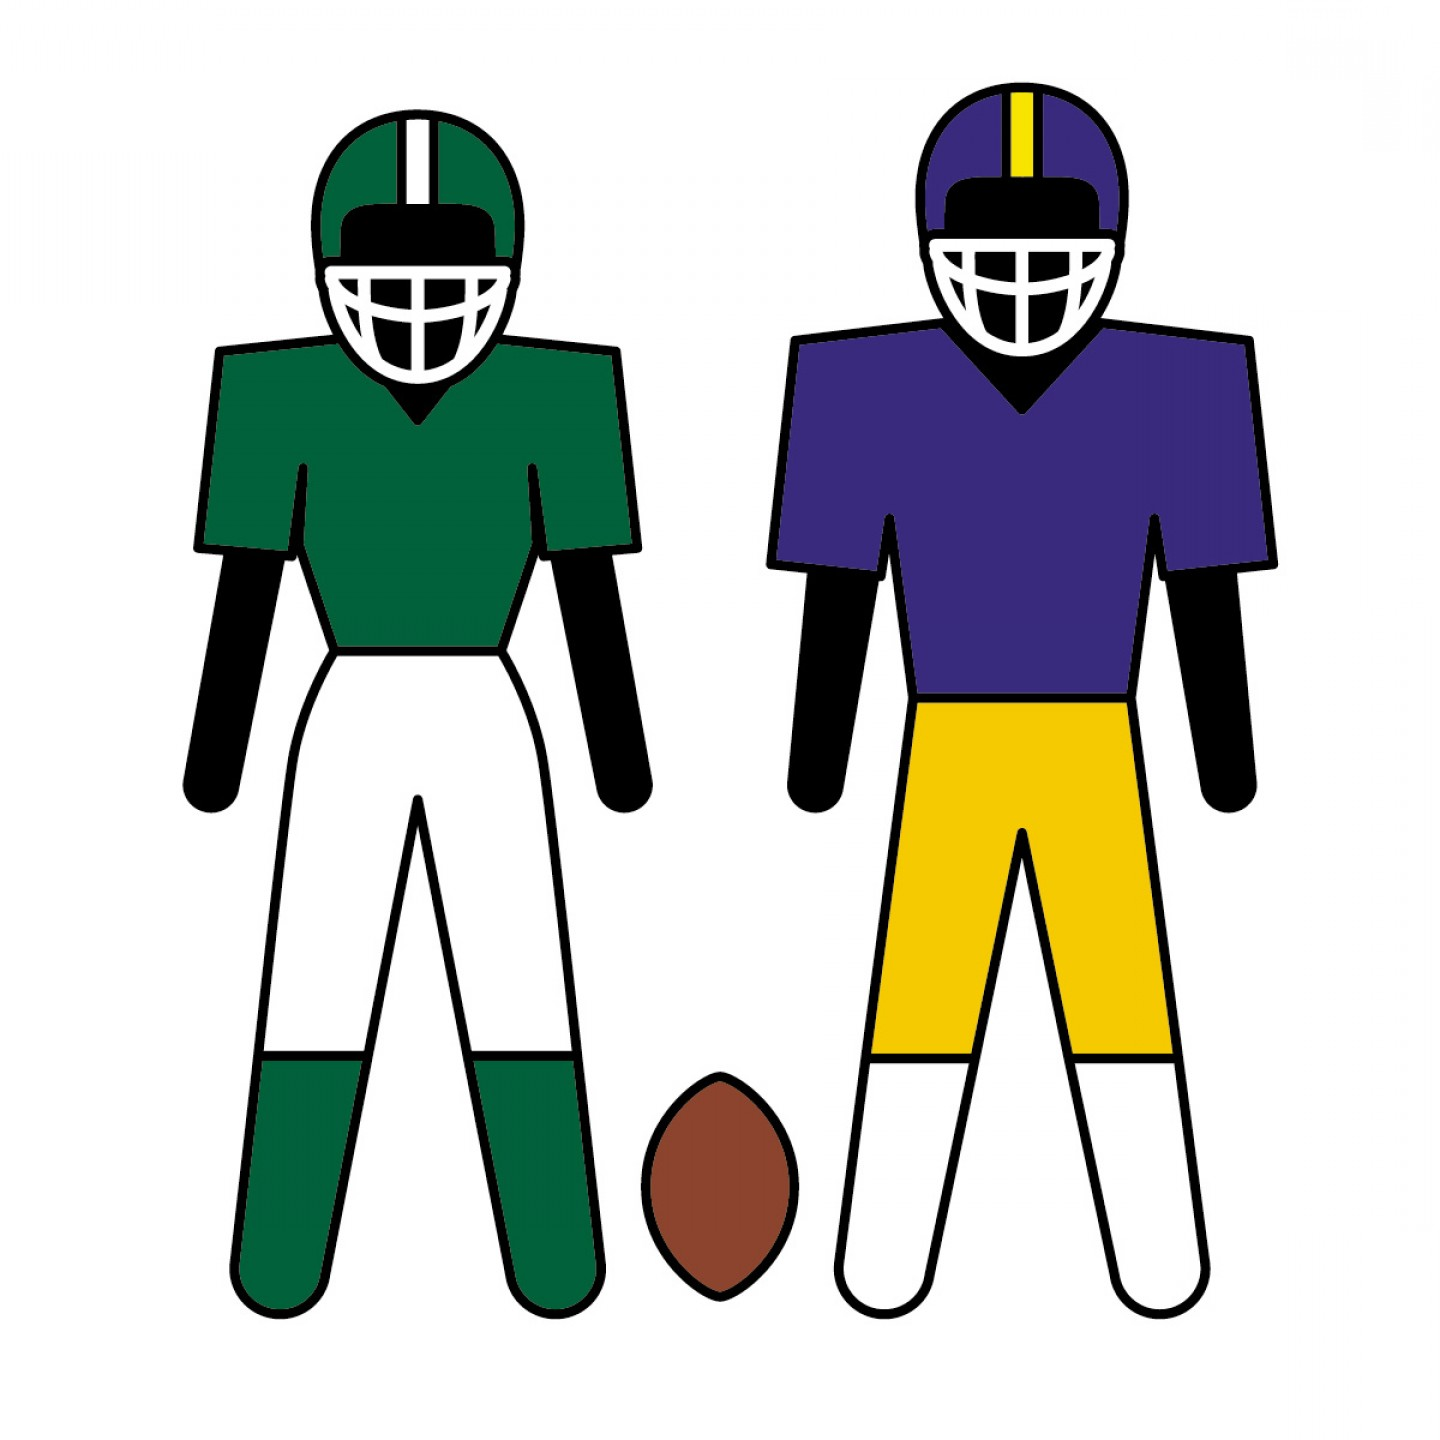 Best Free Animated Football Clipart Image.